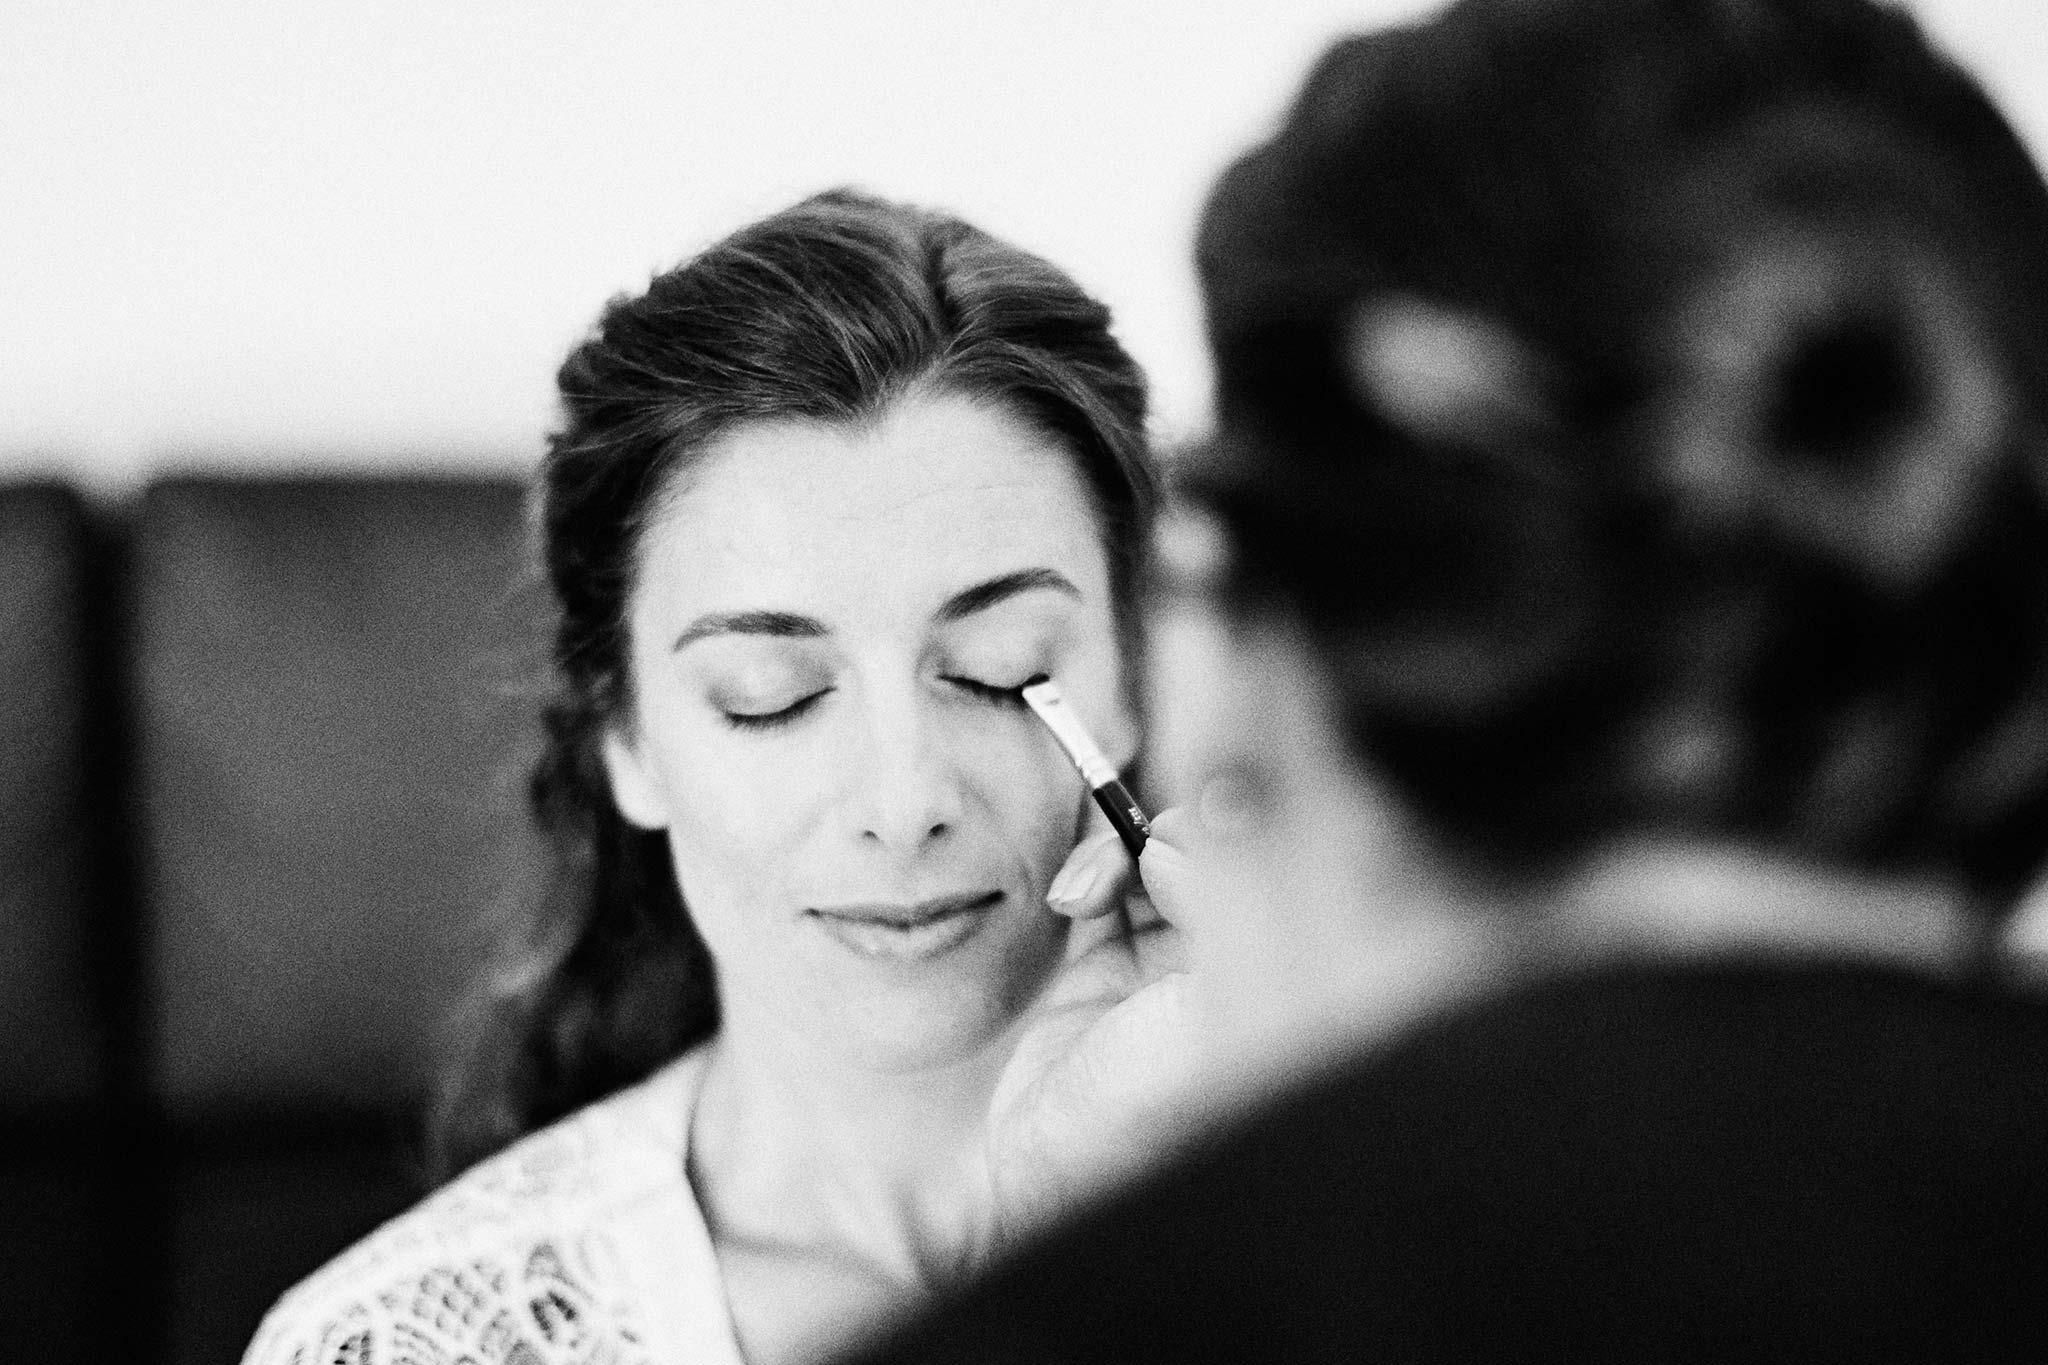 East Melbourne Wedding Bride Getting Ready